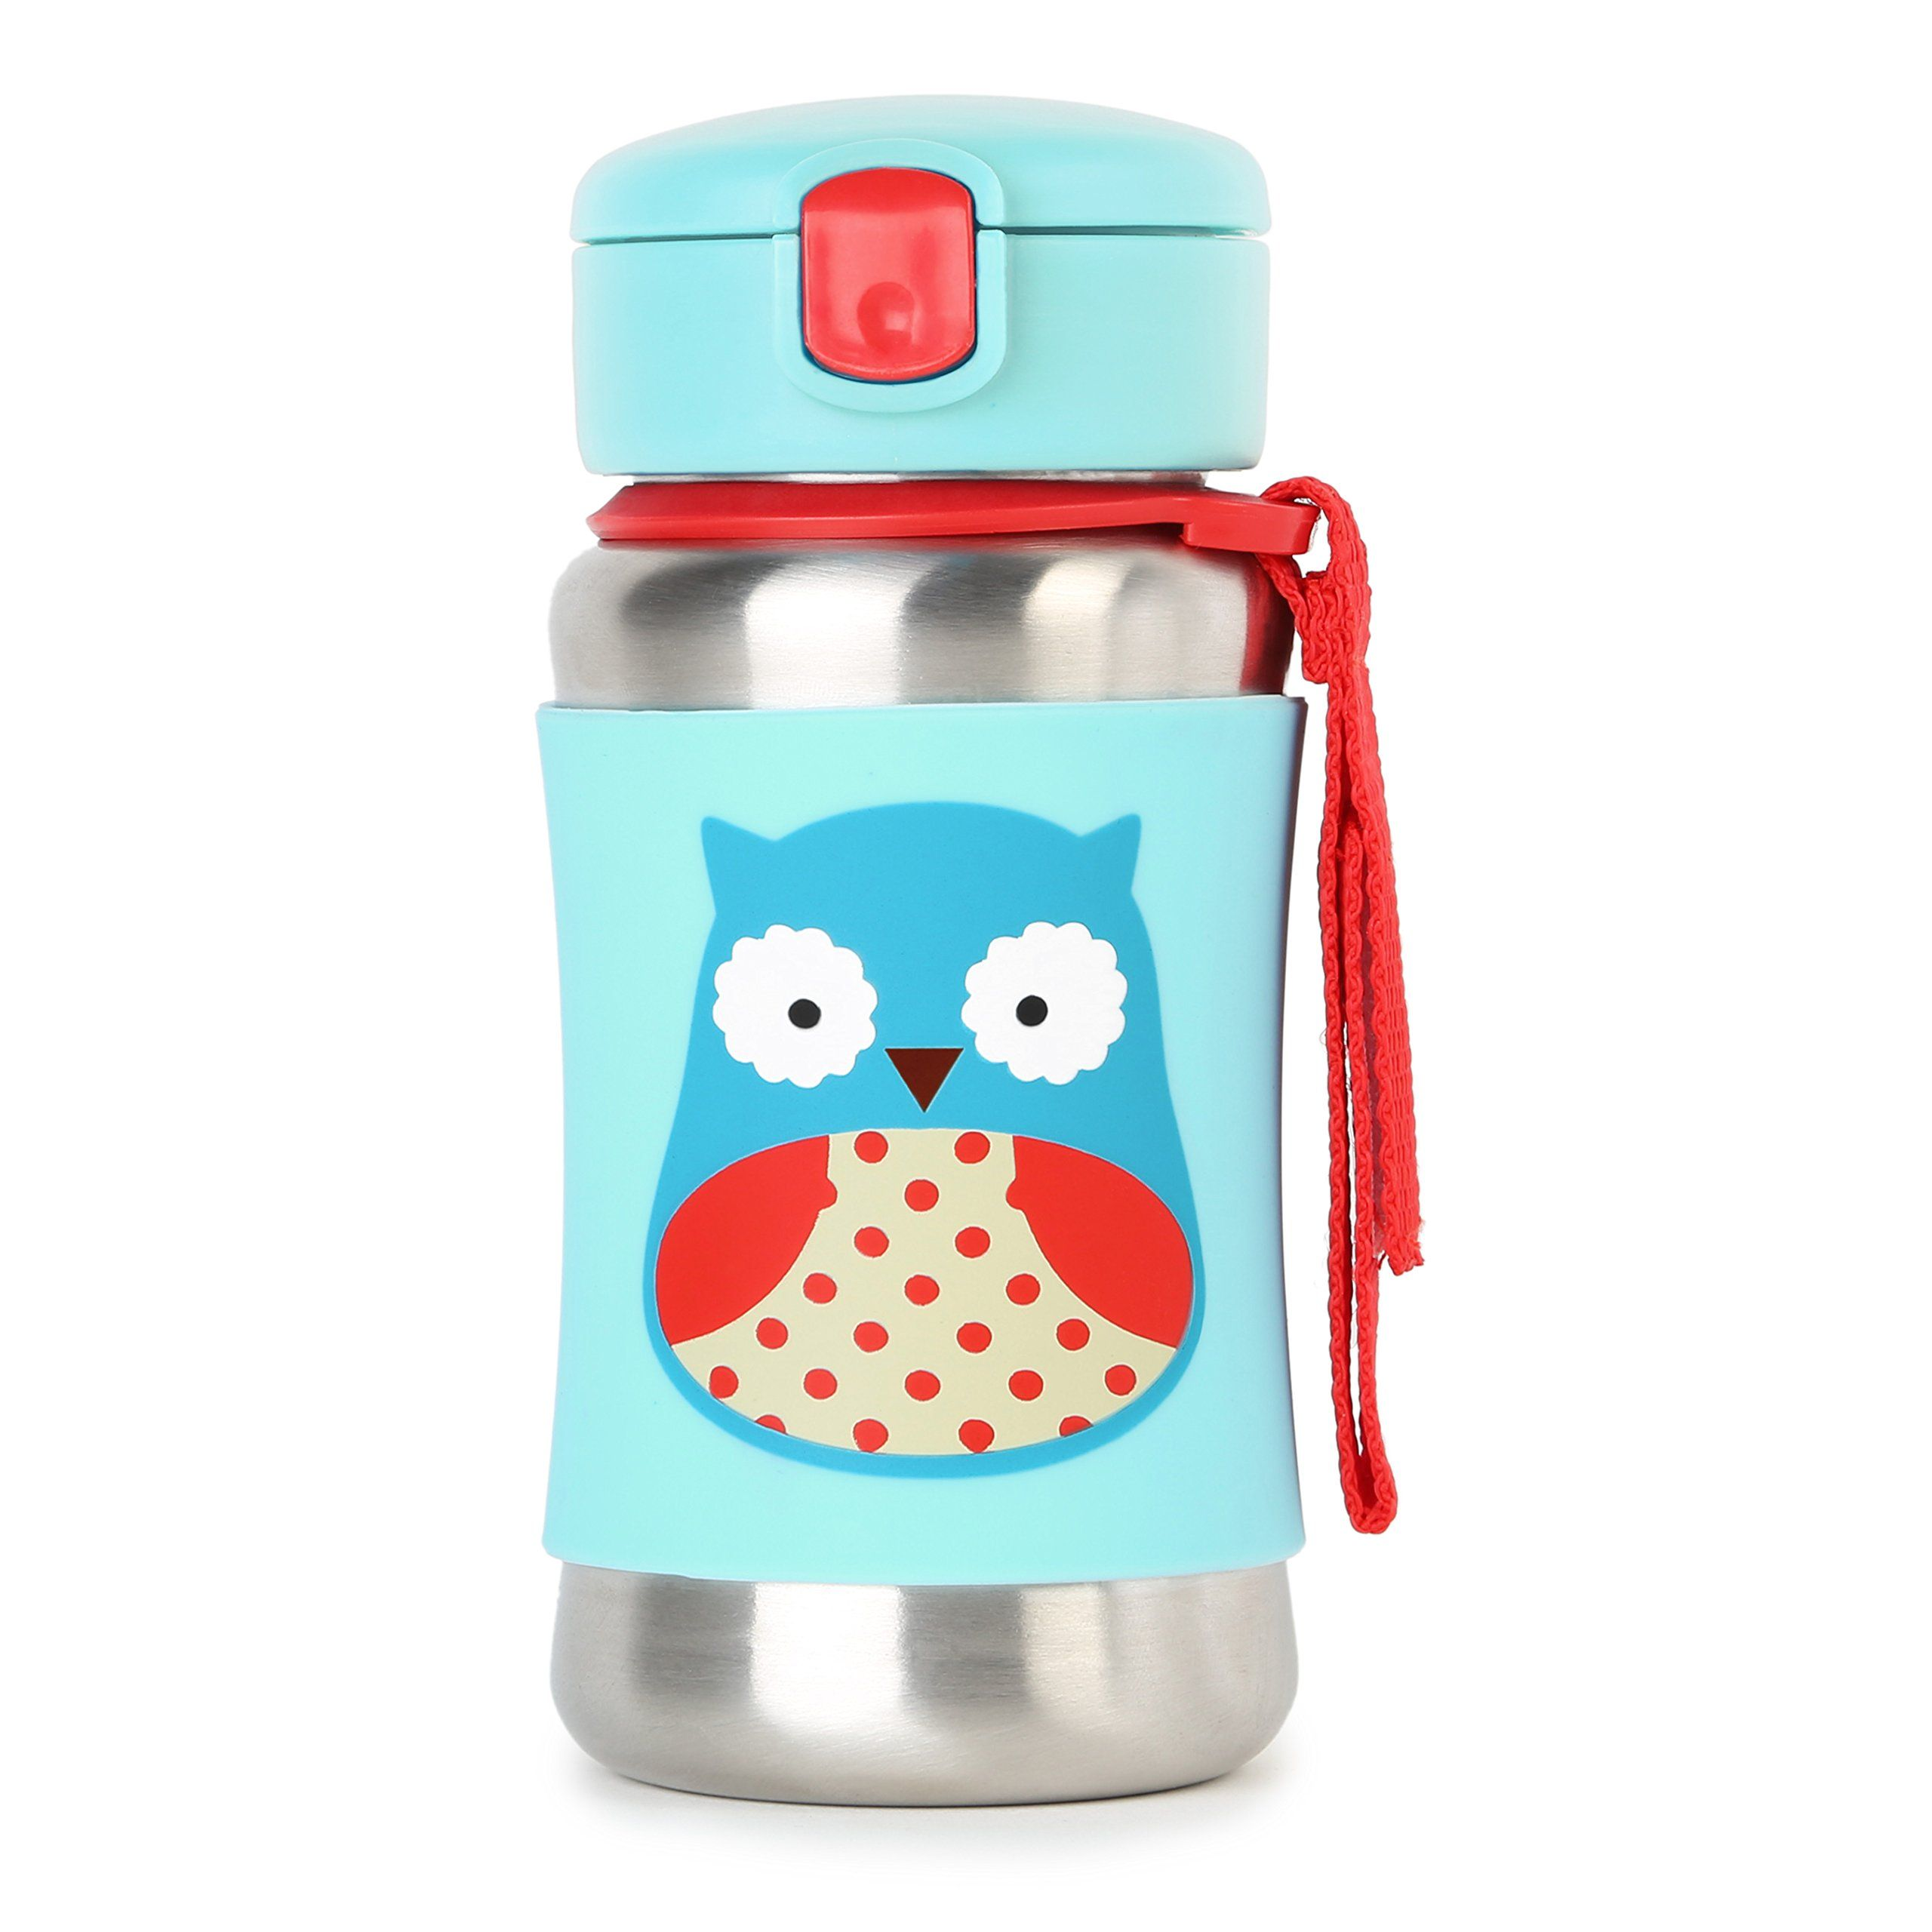 Skip Hop Baby Zoo Little Kid and Toddler Feeding Travel-To-Go Insulated Stainless Steel Straw Bottle, 12 oz, Multi Otis Owl. Stainless steel bottle keeps drinks cool without chilling little hands. No-slip silicone sleeve. Flexible straw flips down to stay clean. Signature Skip Hop Zoo characters. Dishwasher-safe.